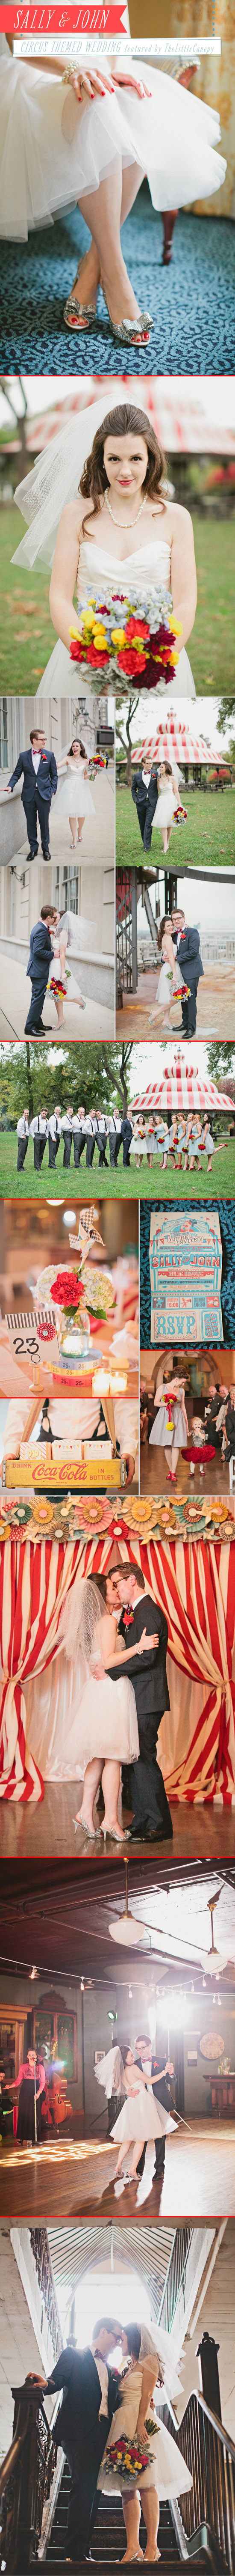 Real Wedding: Circus Theme